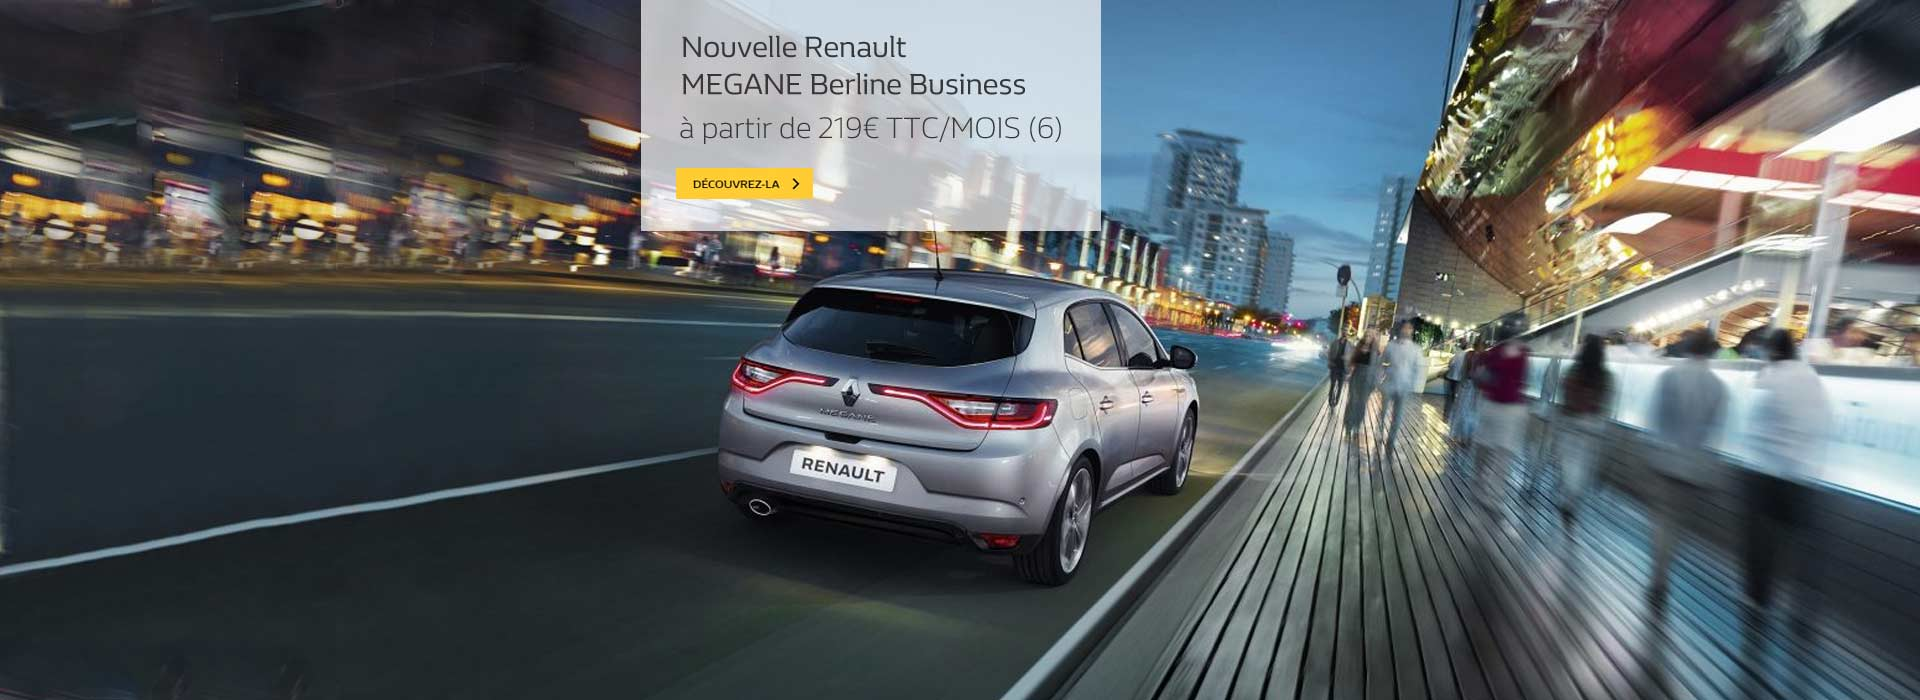 Nouvelle Renault MEGANE Berline Business